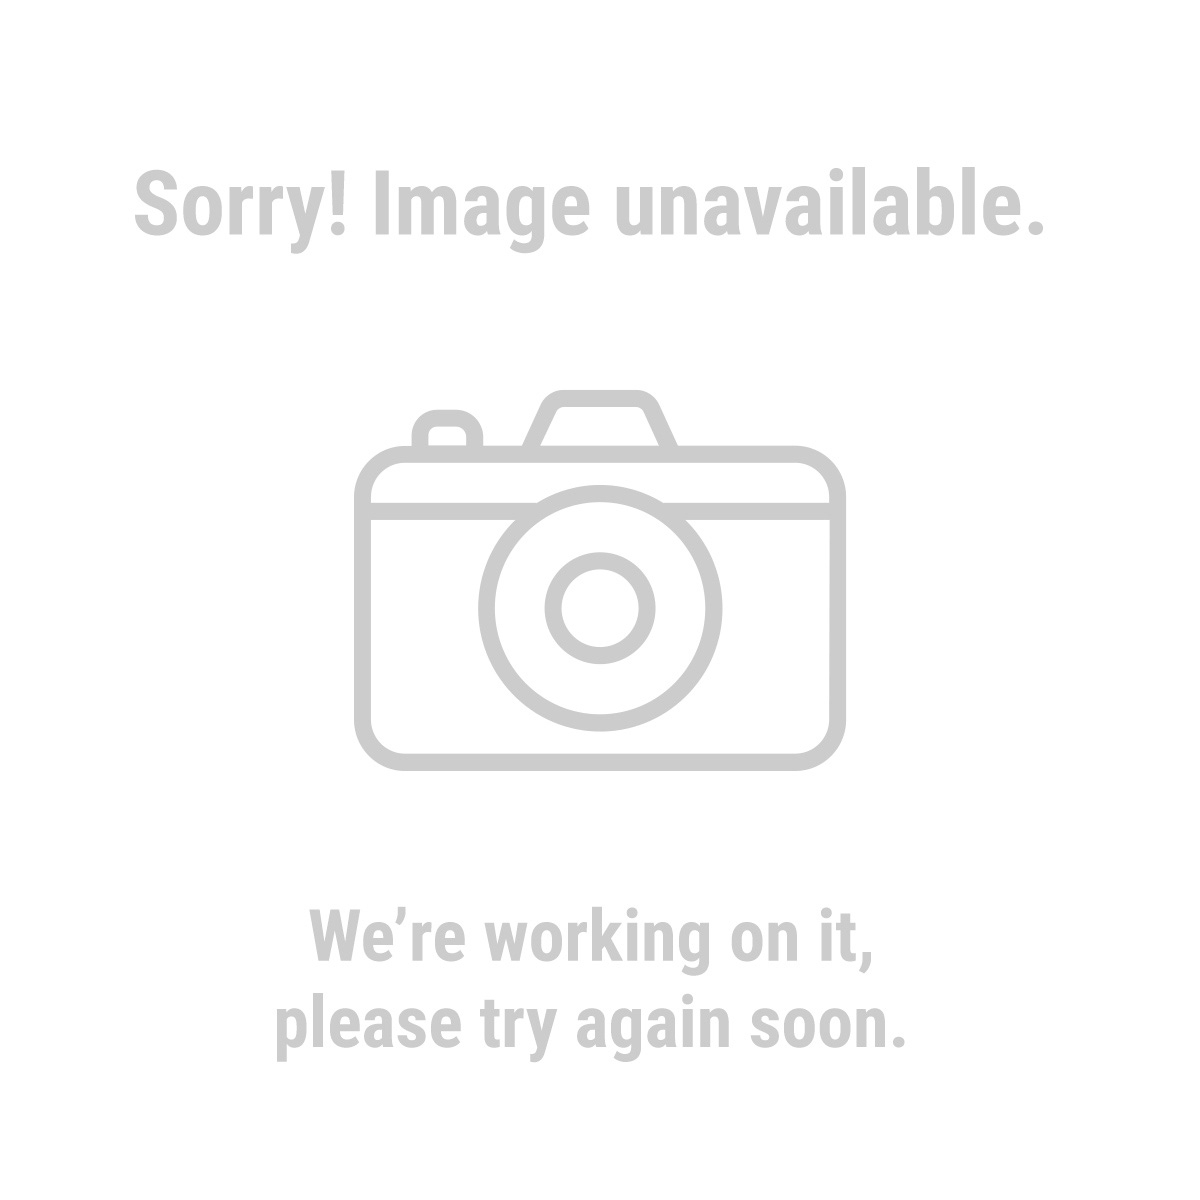 Chicago Electric Power Tools 62370 6 Amp Heavy Duty Variable Speed Rotating Handle Reciprocating Saw